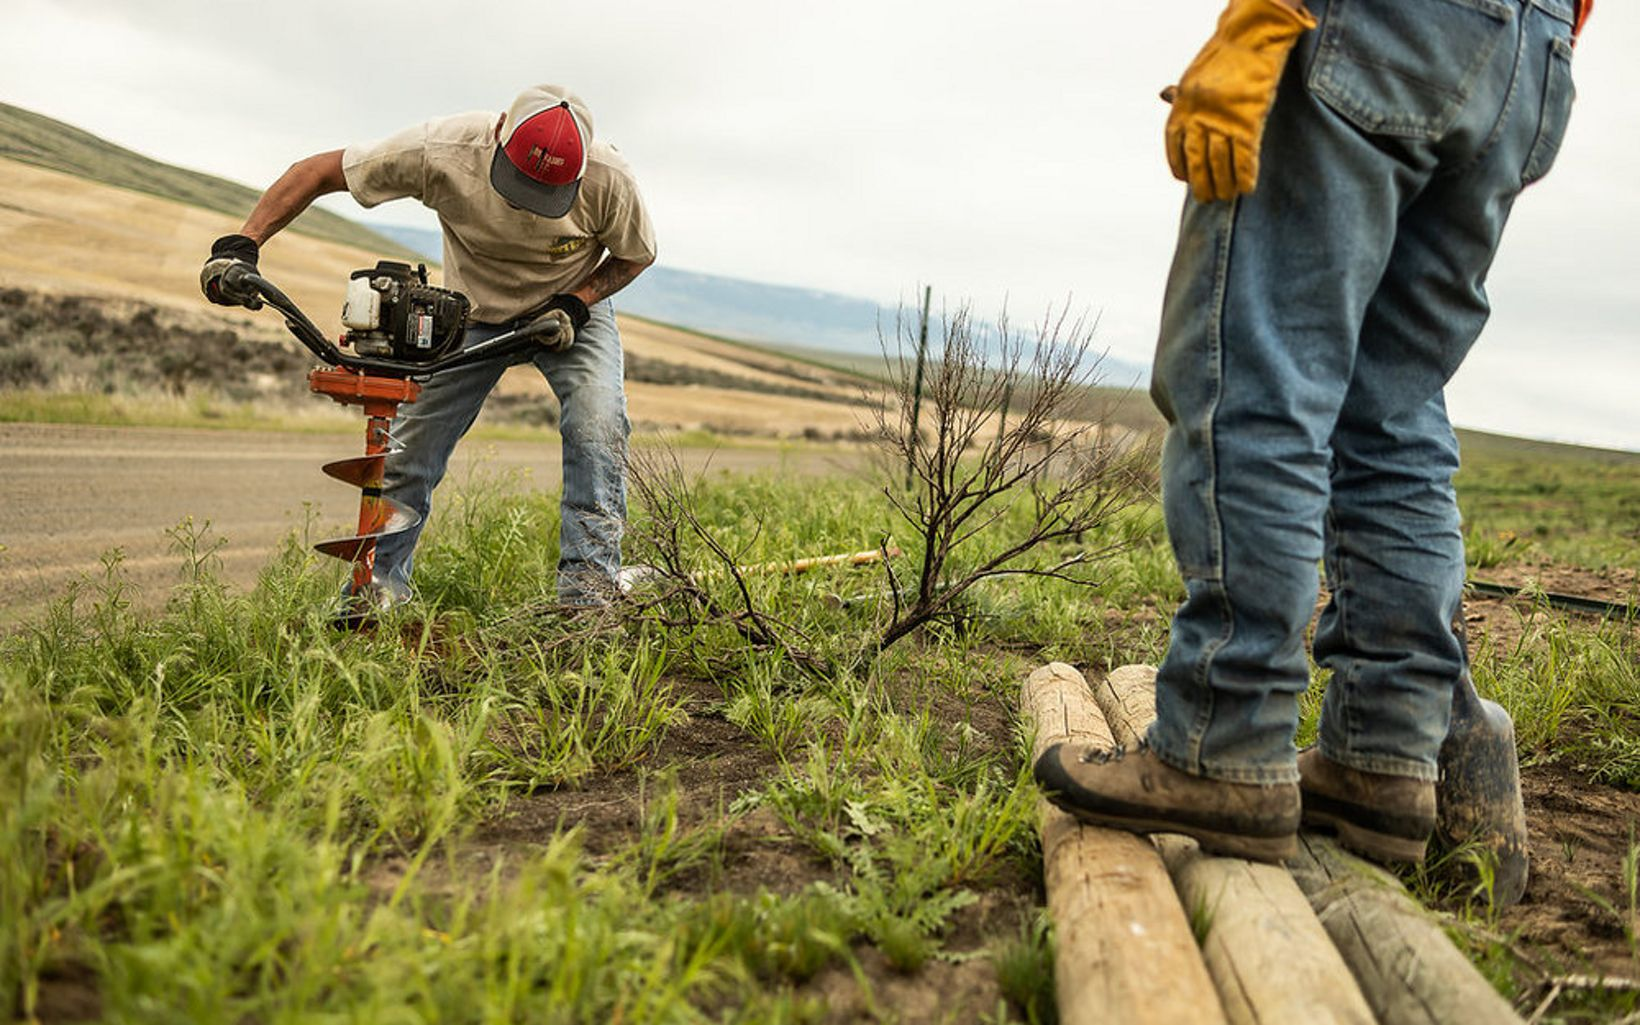 TNC's Eastern Washington Stewardship Coordinator to replace fence posts burned in 2017 at our Beezley Hills Preserve.